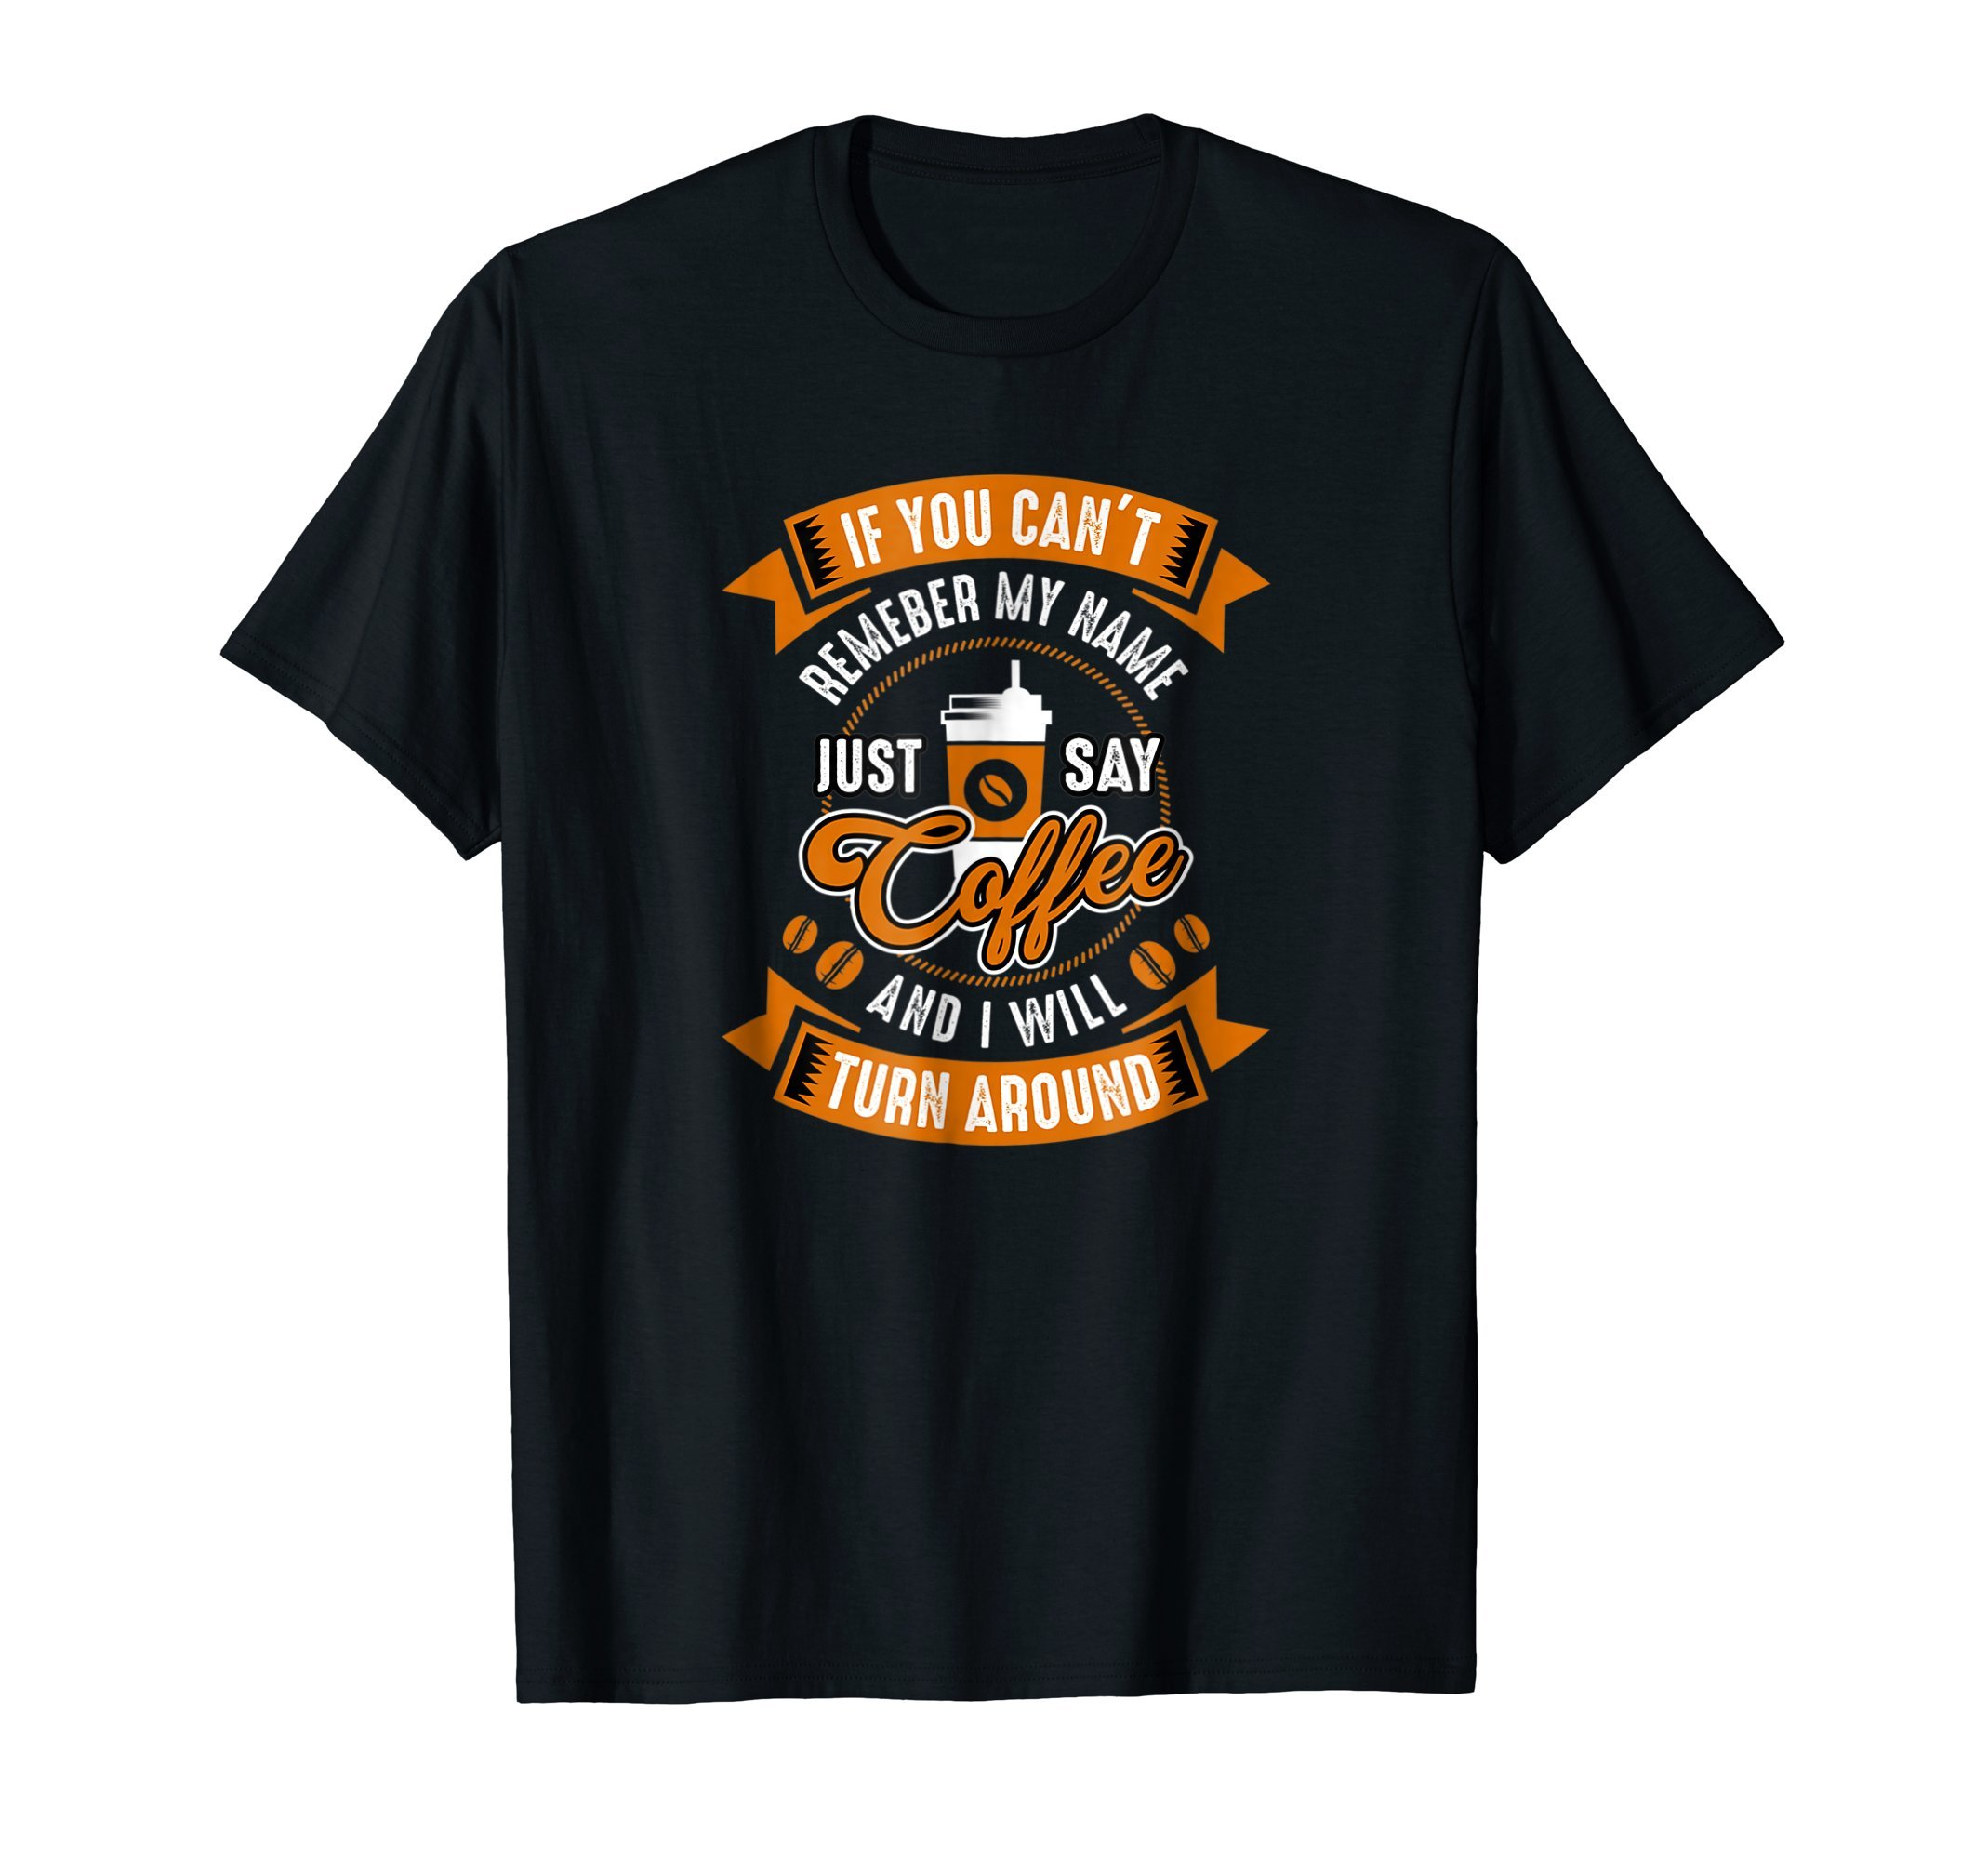 If-you-cant-remember-my-name-just-say-coffee-Humor-T-shirt